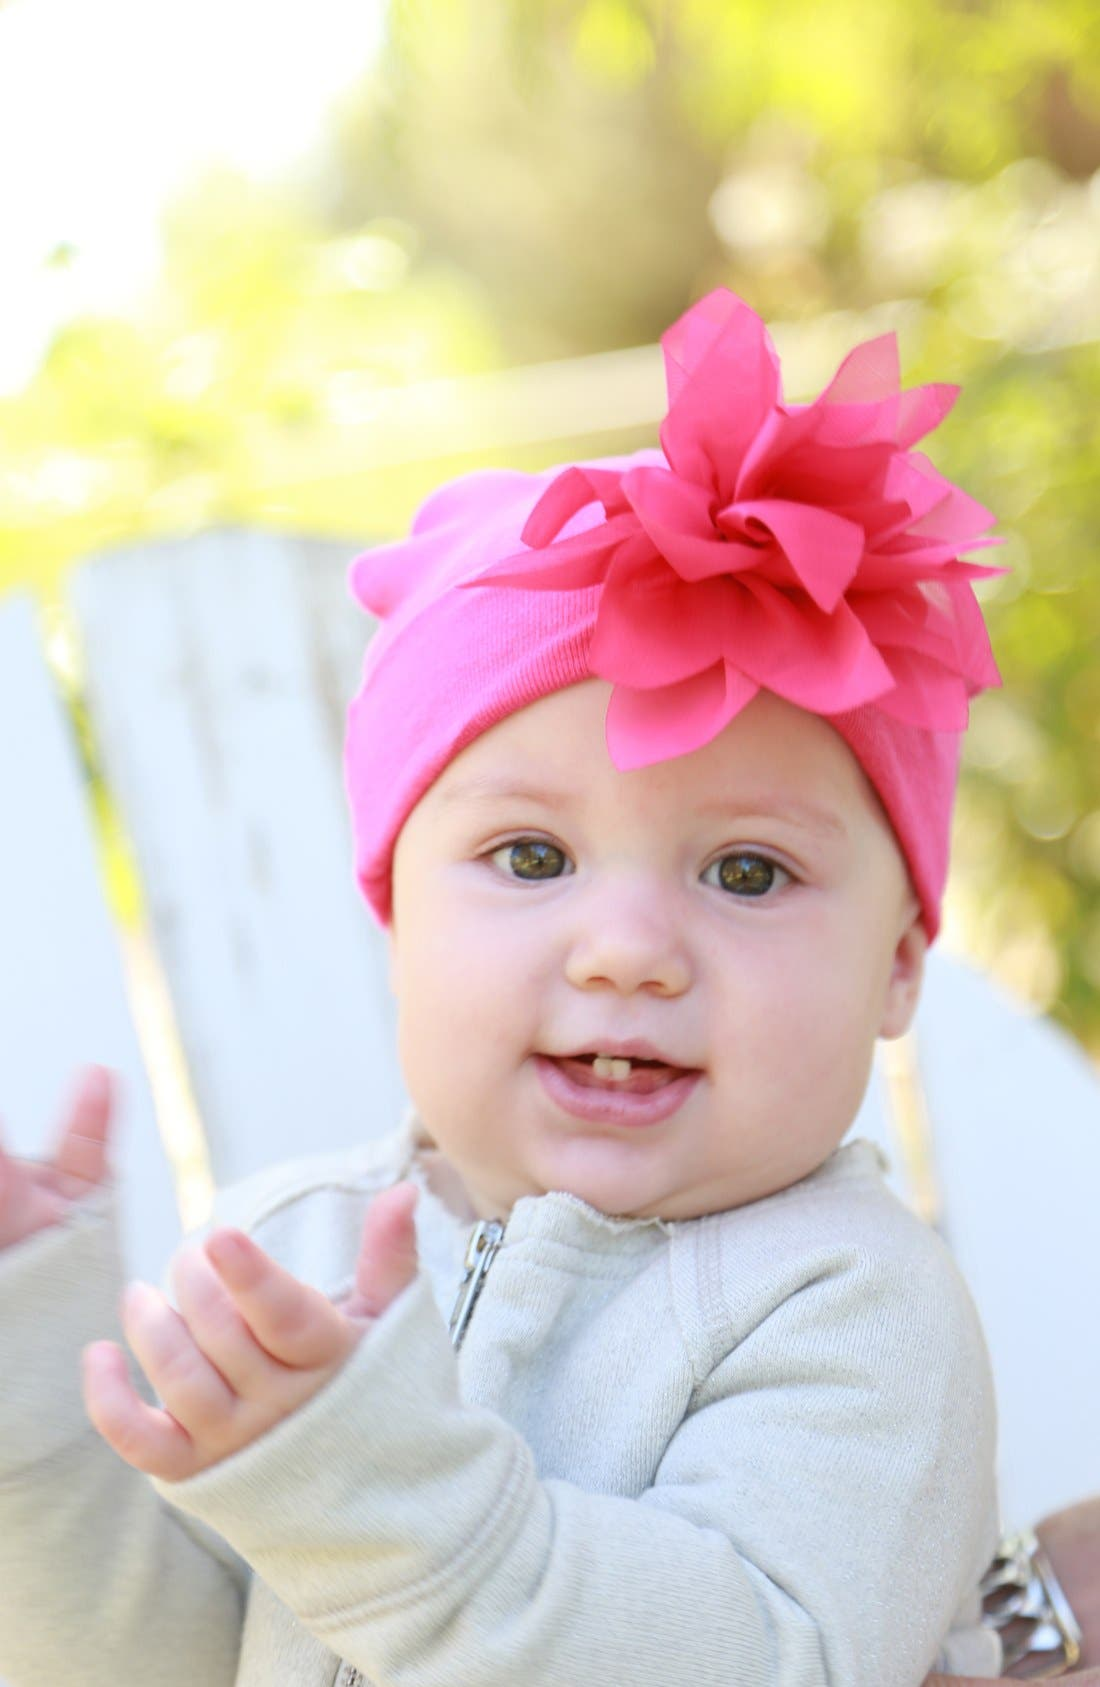 Alternate Image 1 Selected - PLH Bows & Laces Flower Embellished Knit Hat (Baby Girls)